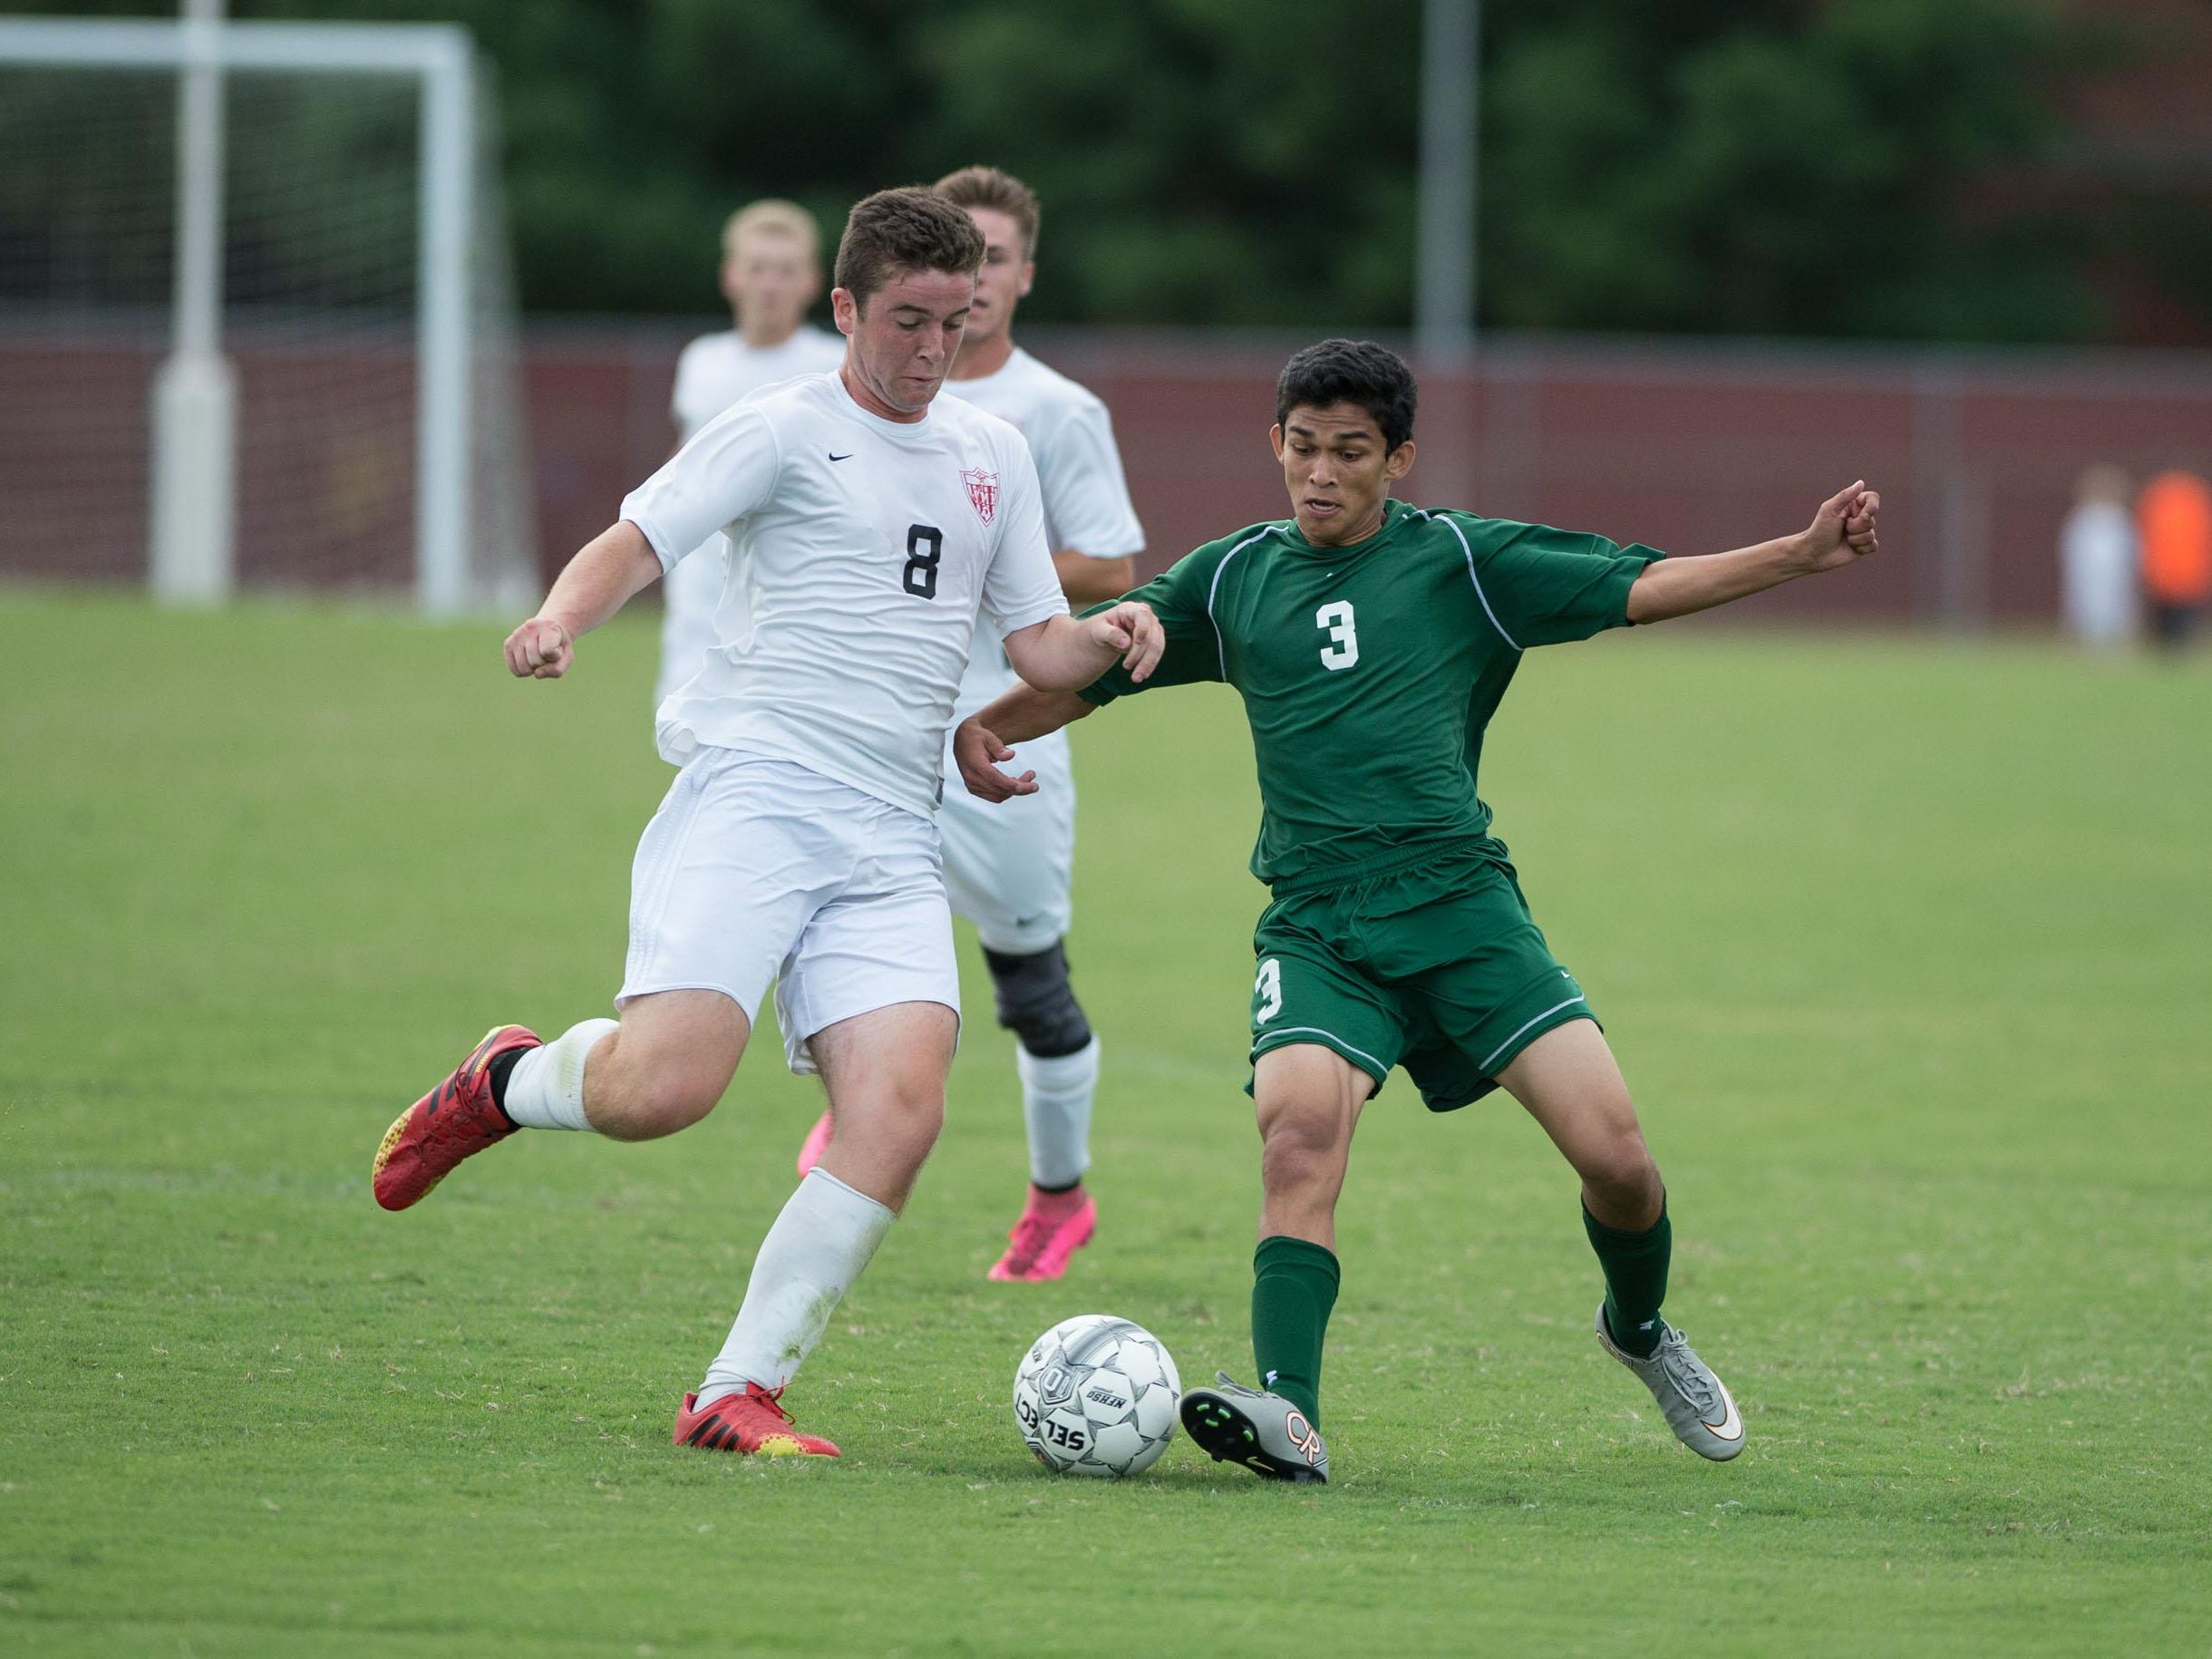 Parkside's Ramit Gupta, right, attempts to steal the ball from JMB's Stefan Swierkosz.